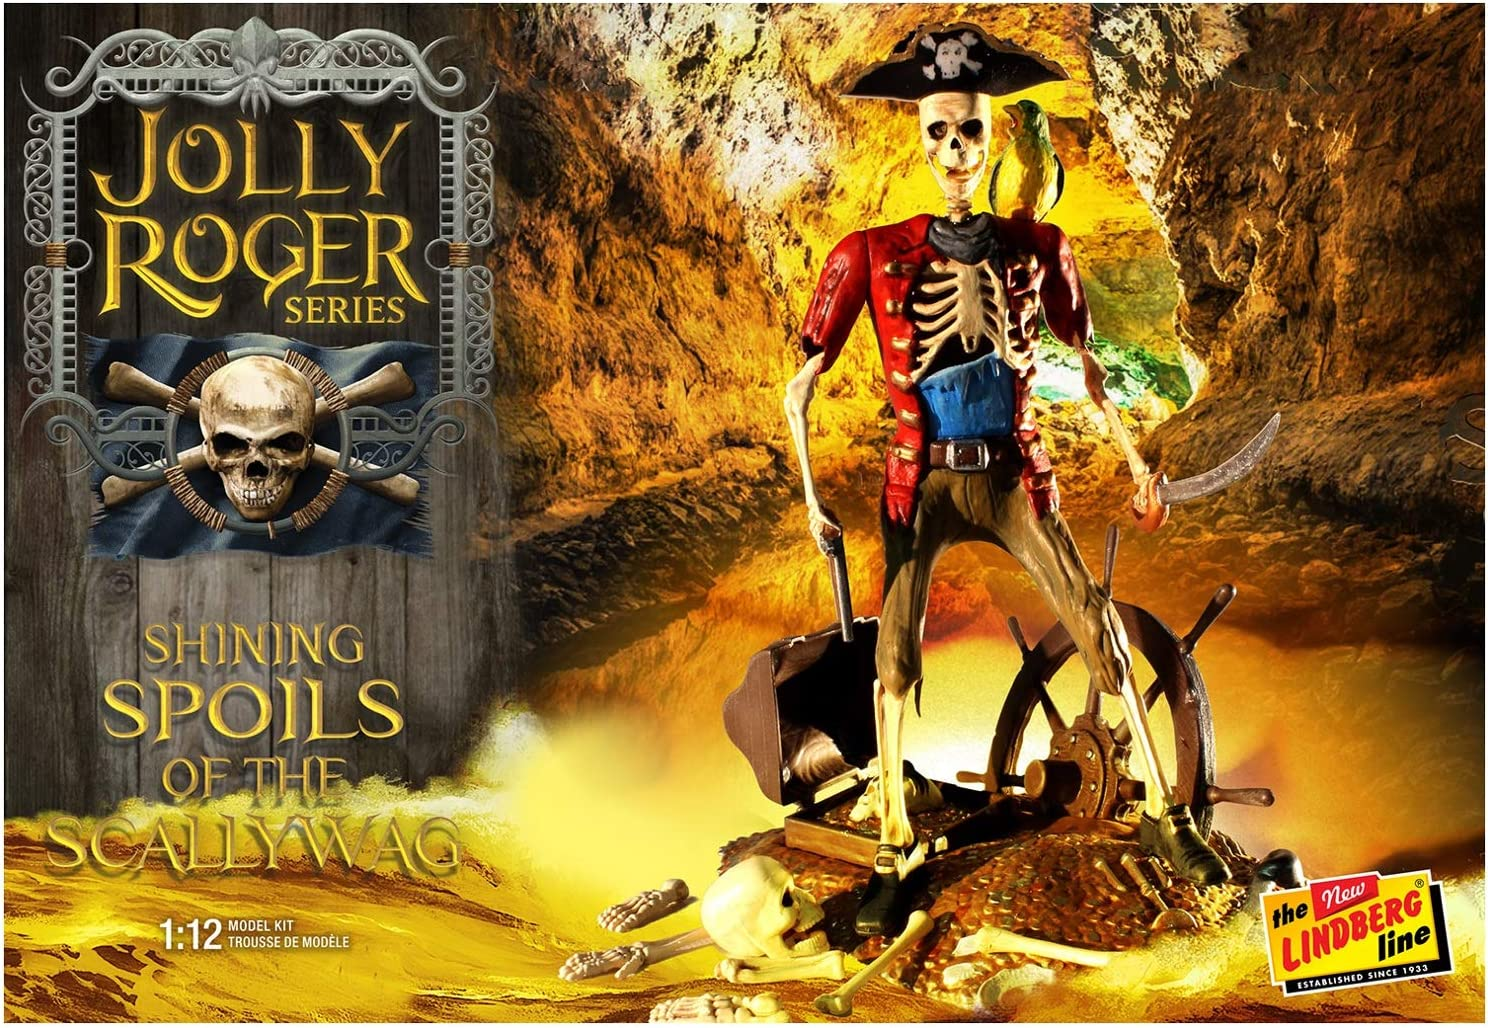 Lindberg - Jolly Roger Series: Scallyw Spoils Shining specialty shop Memphis Mall The of